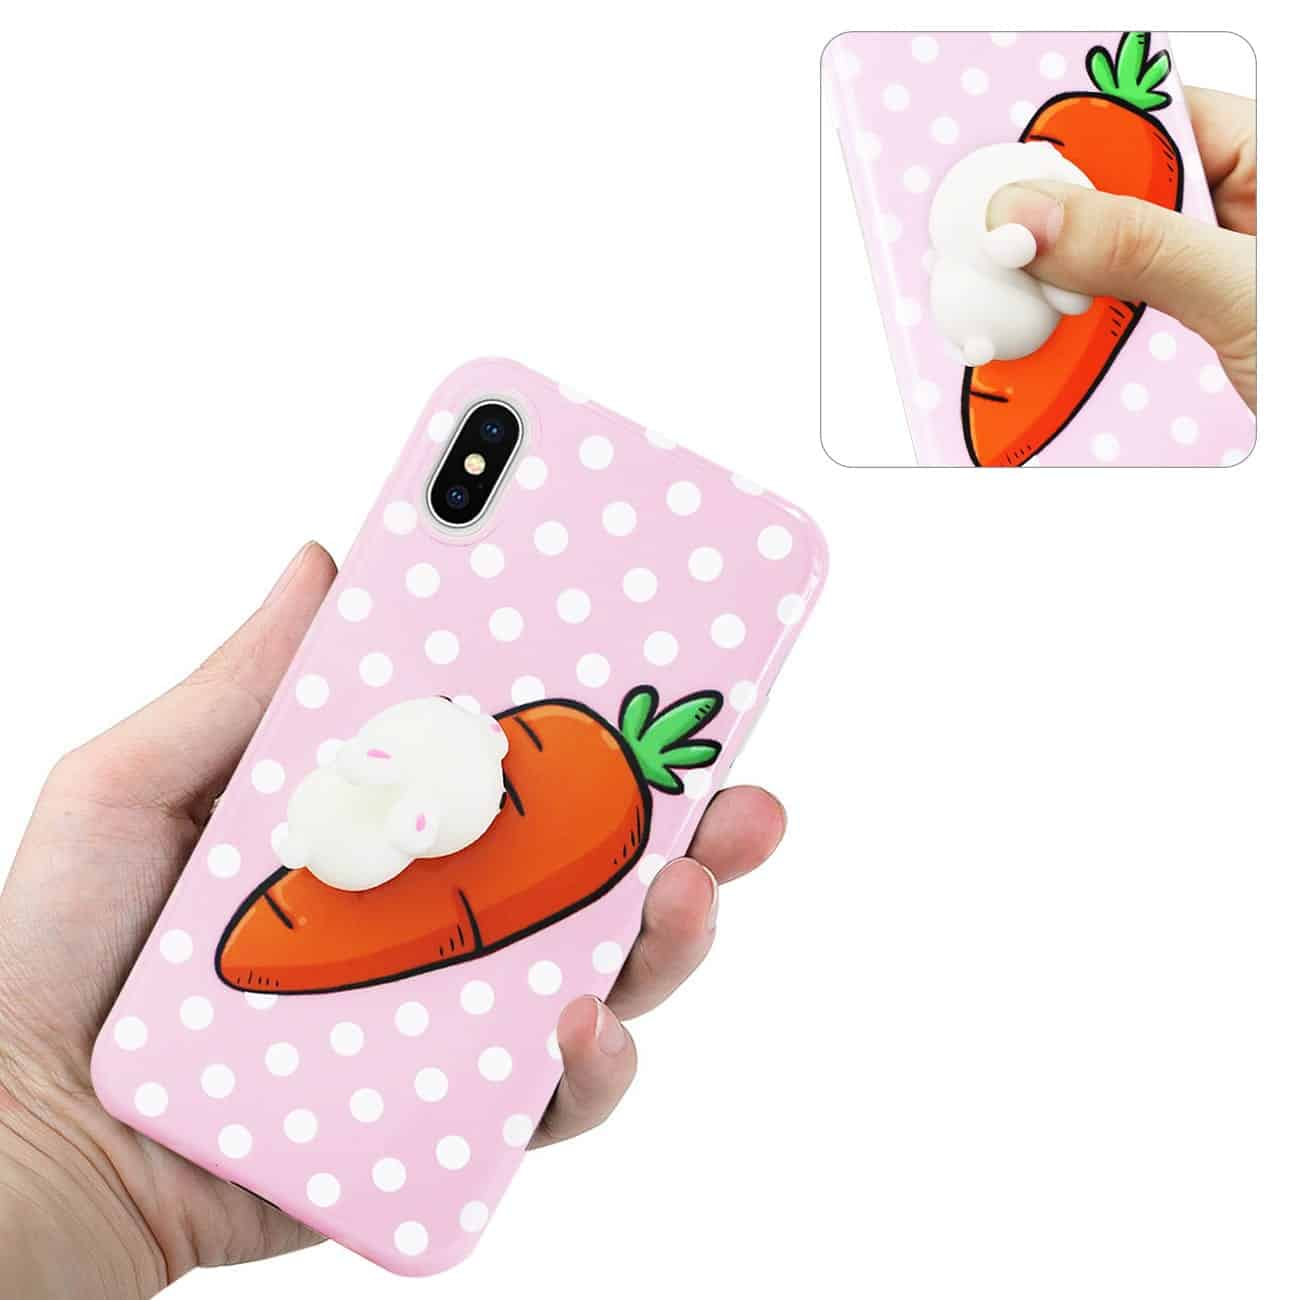 IPHONE X TPU DESIGN CASE WITH  3D SOFT SILICONE POKE SQUISHY RABBIT